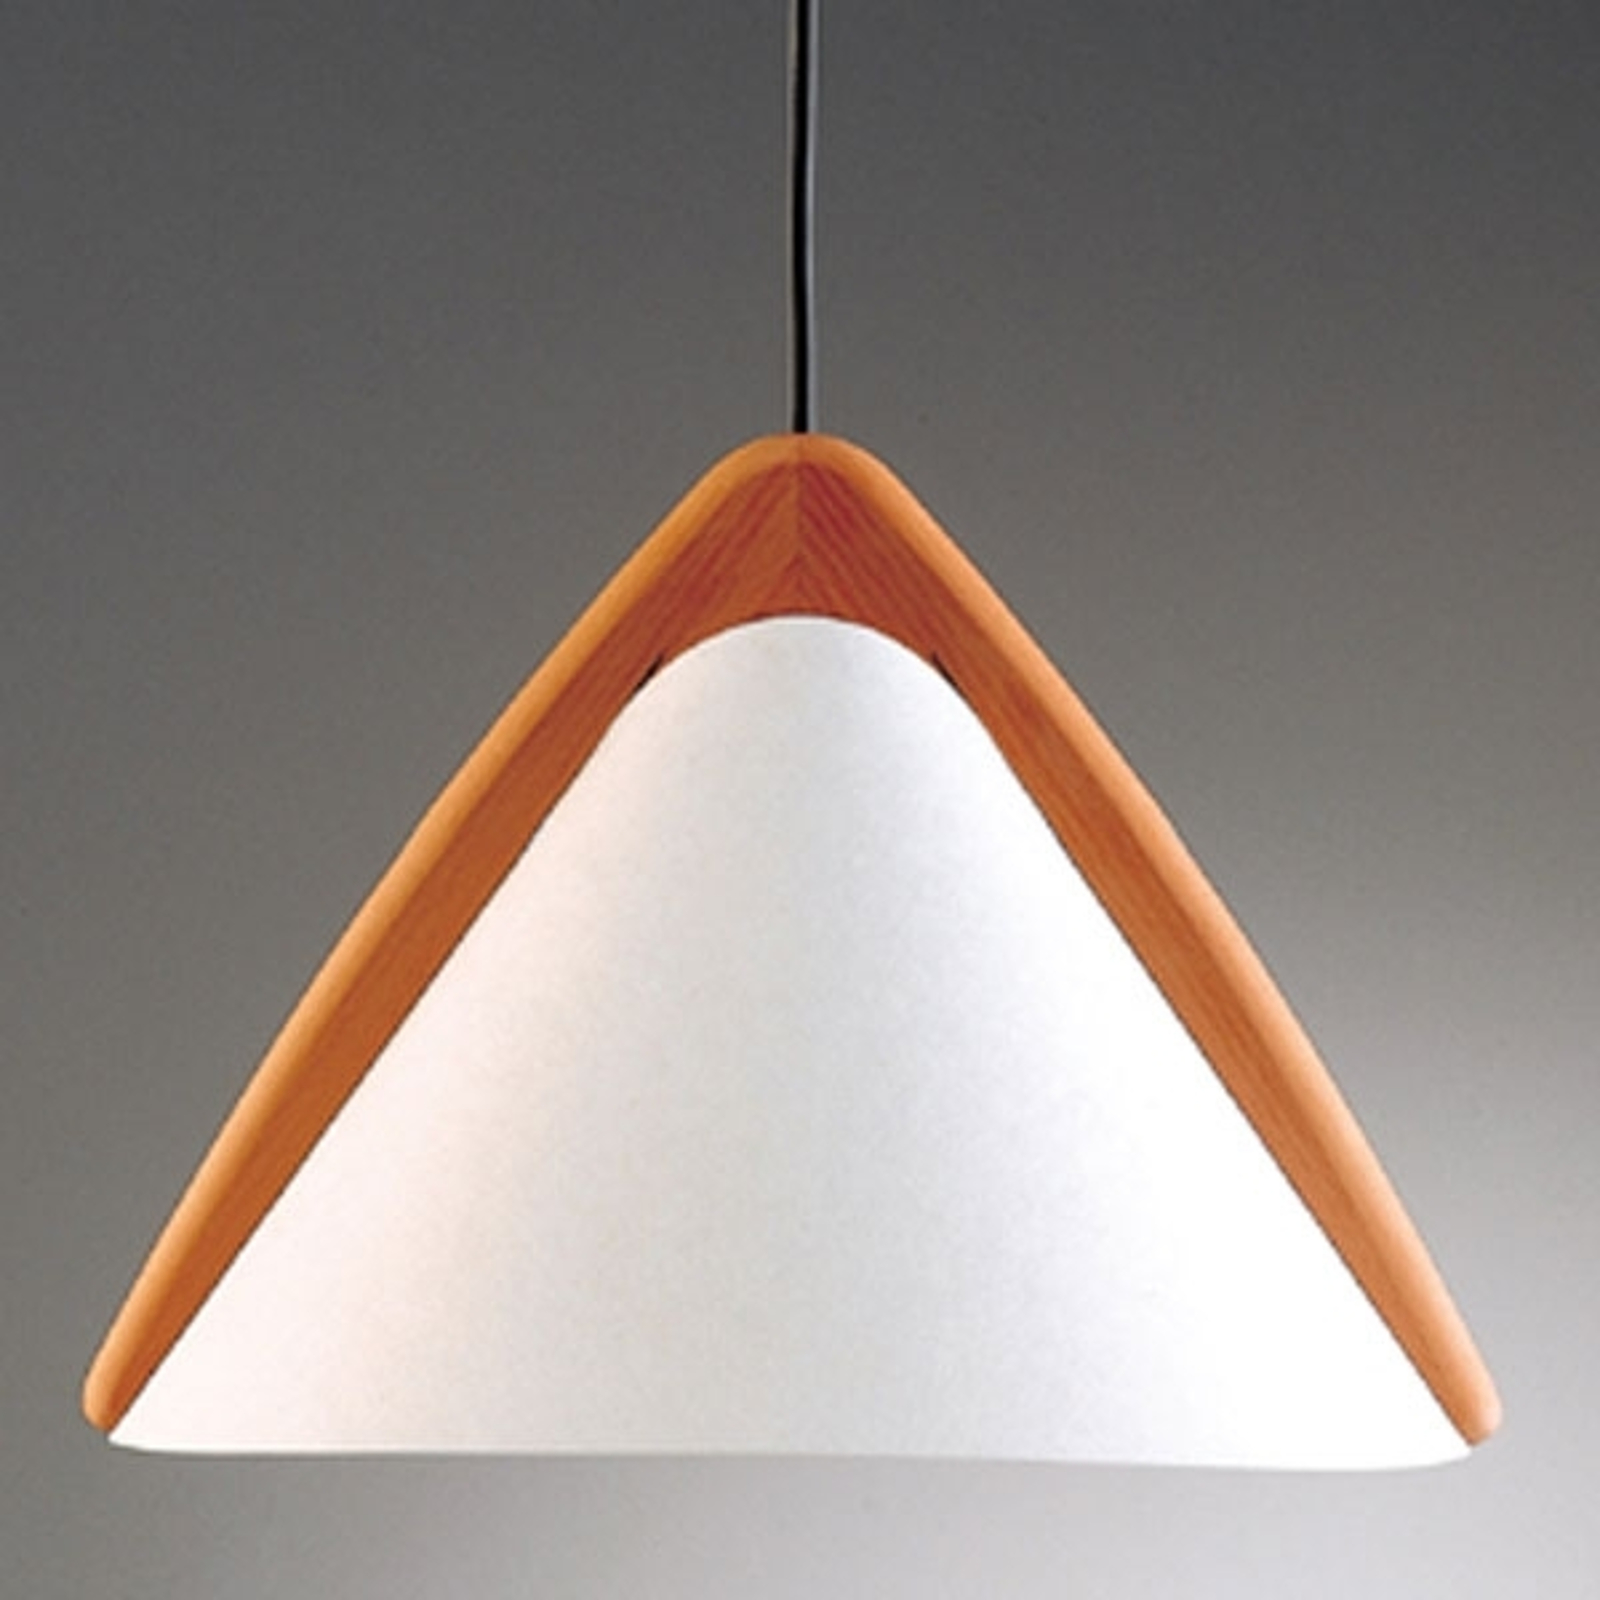 Beautiful pendant light PILA by Domus_2600206_1